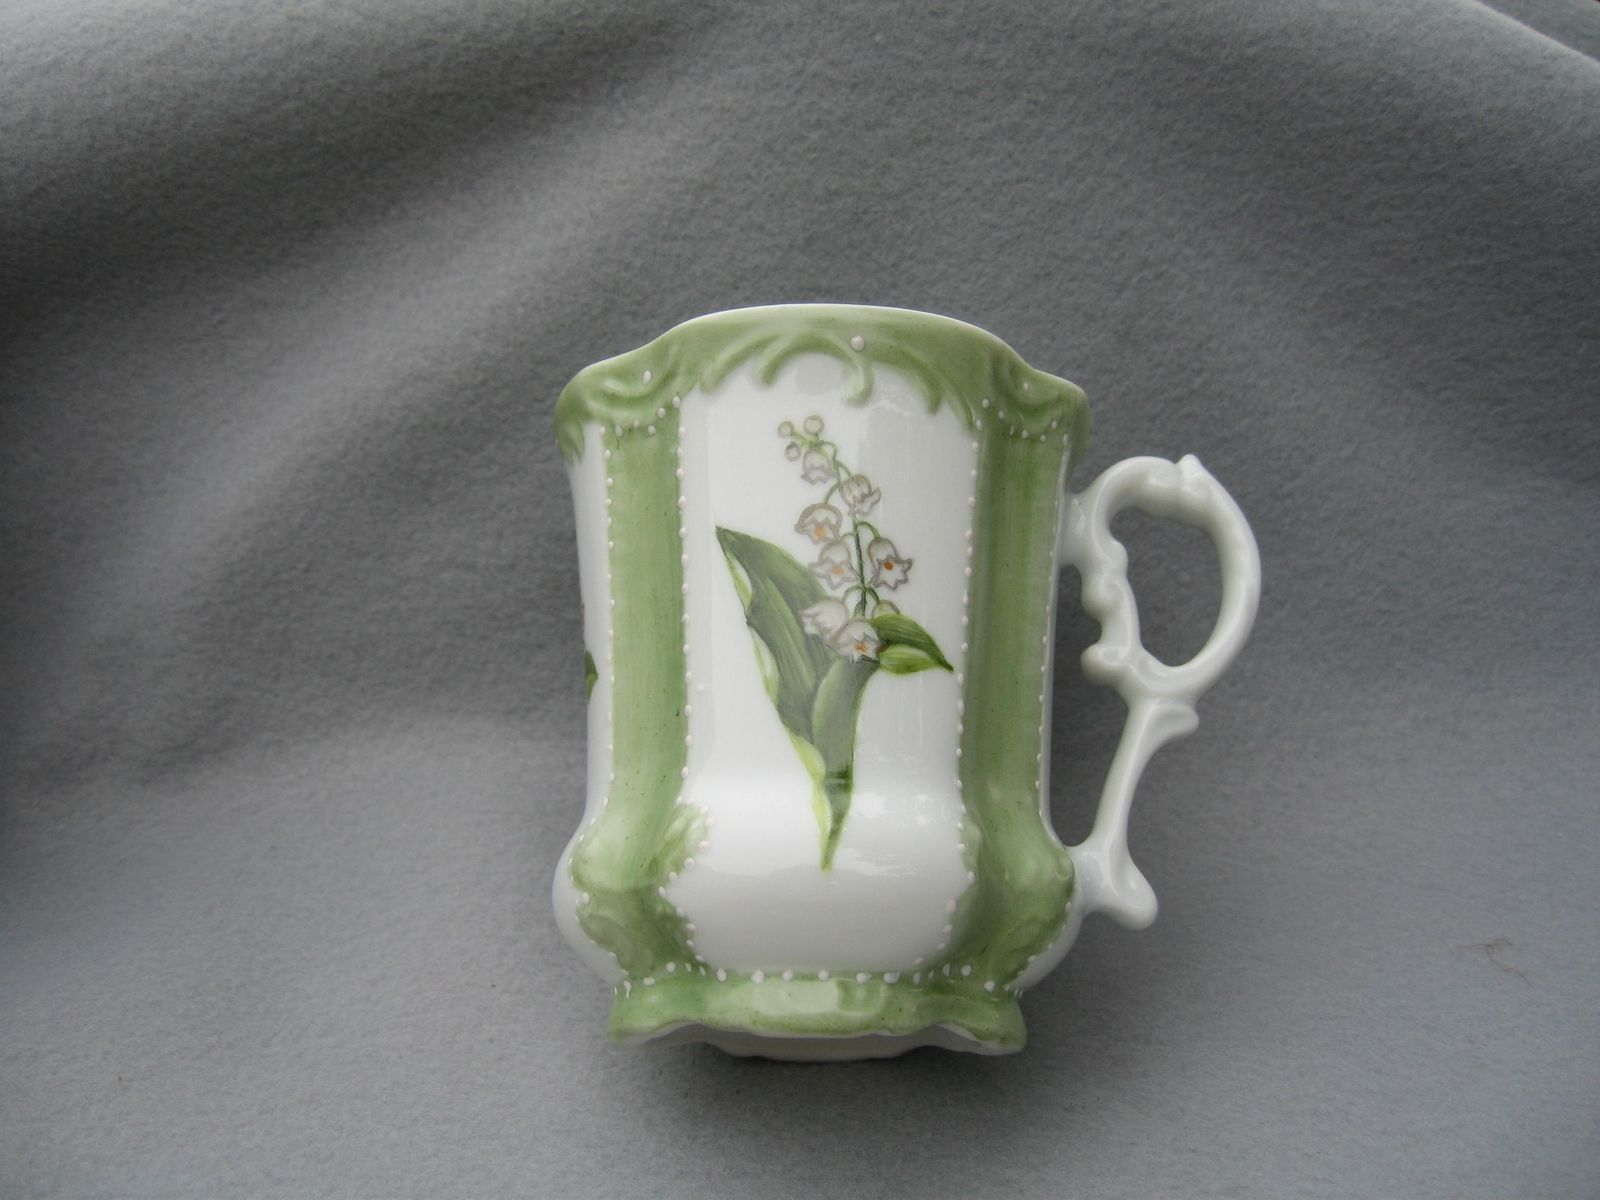 10a7a9e786a Hand Painted Lily Of The Valley Porcelain Mug. by Jane Kozlak